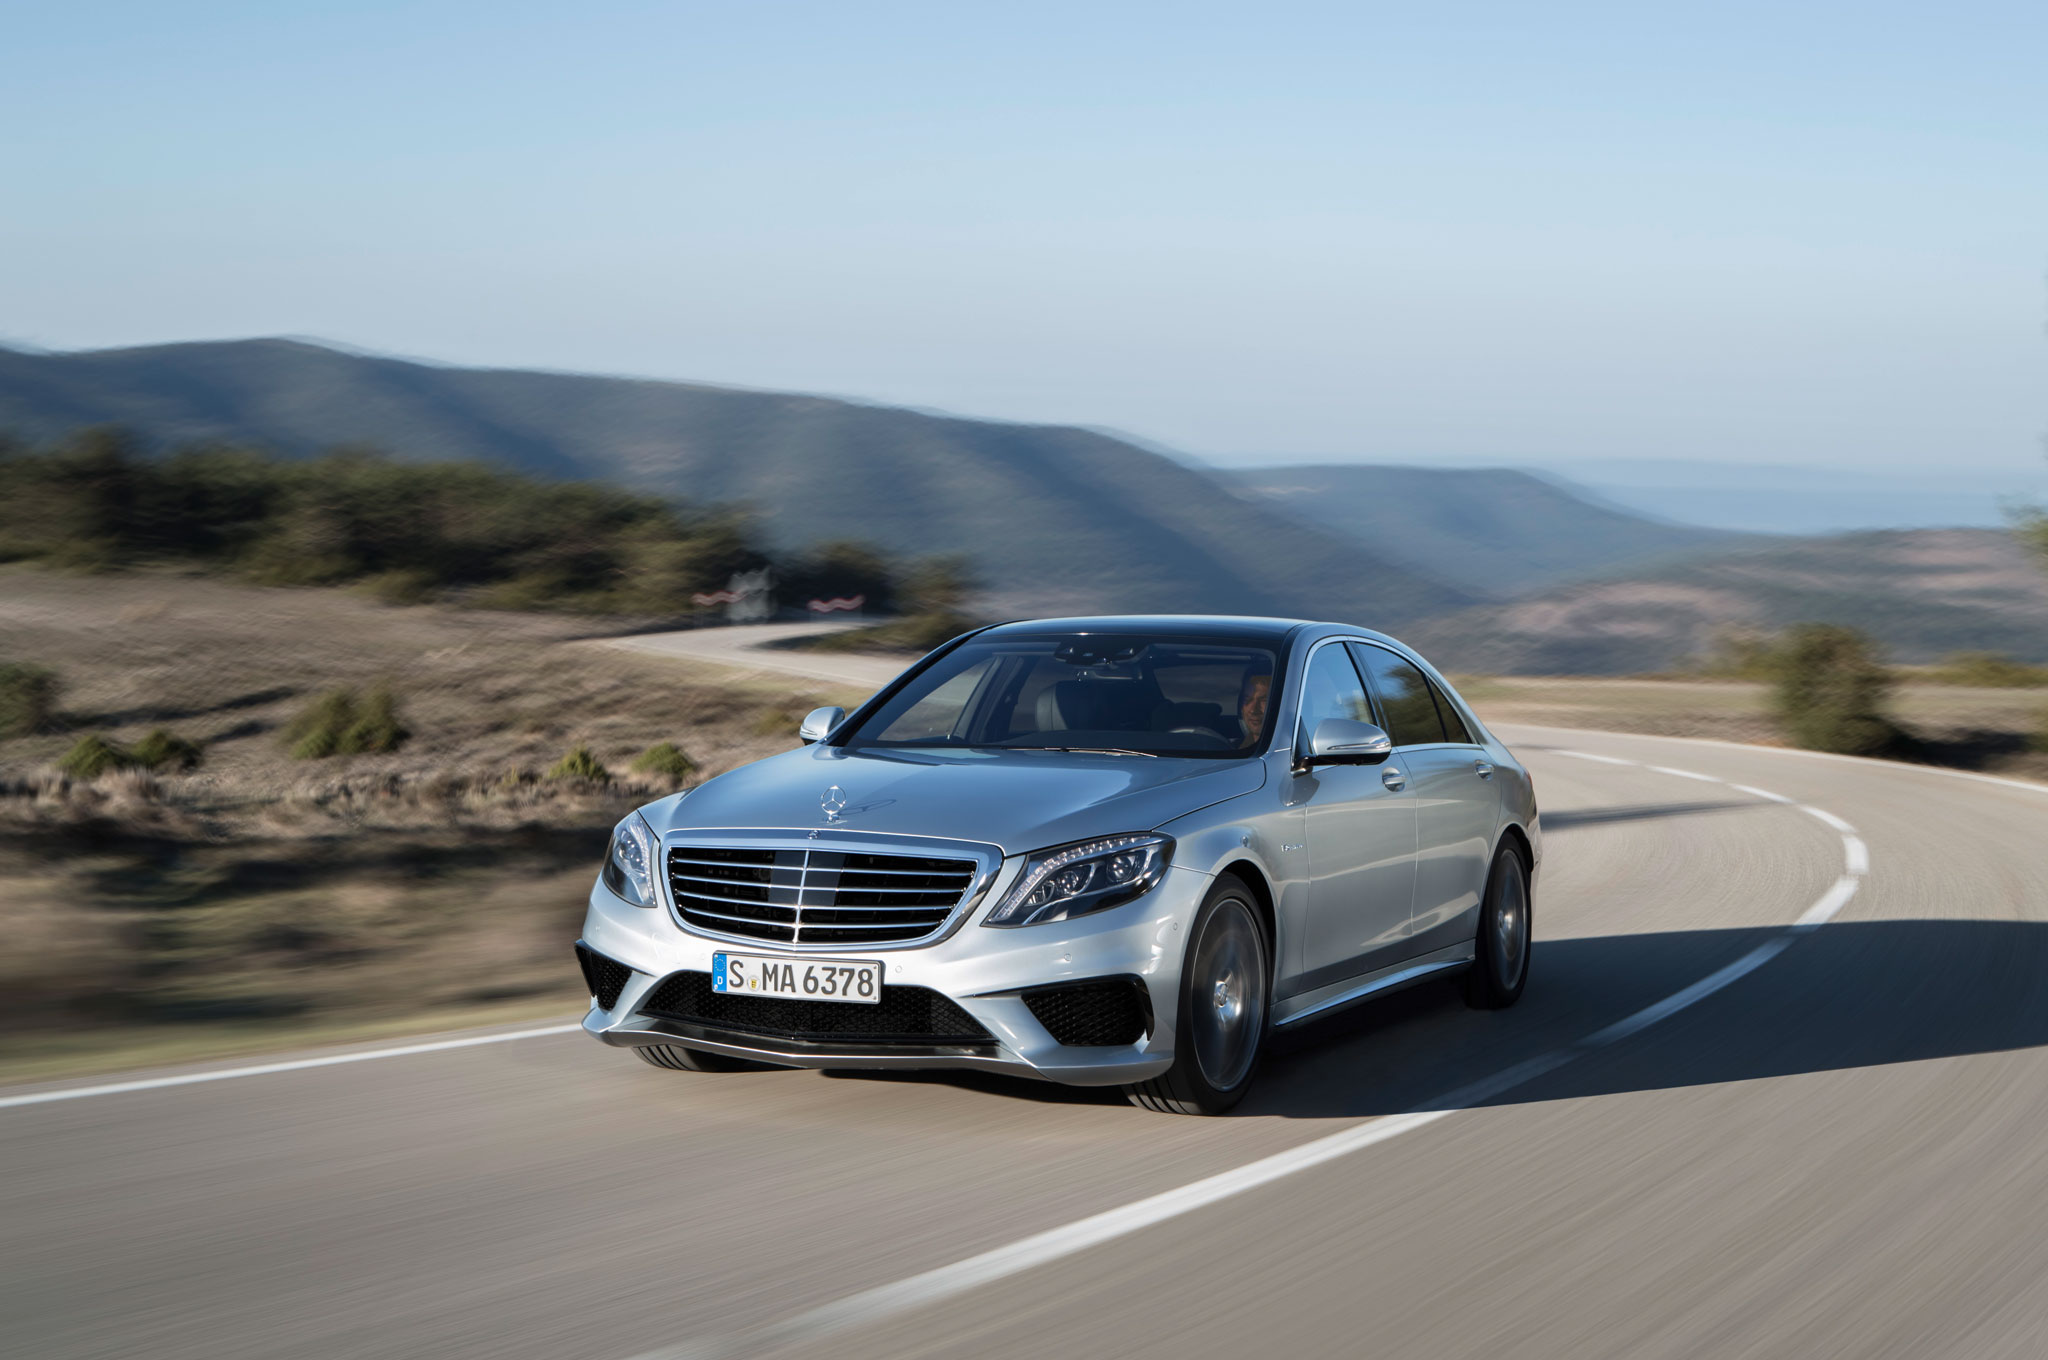 2014 Mercedes Benz S63 AMG Front Left View1